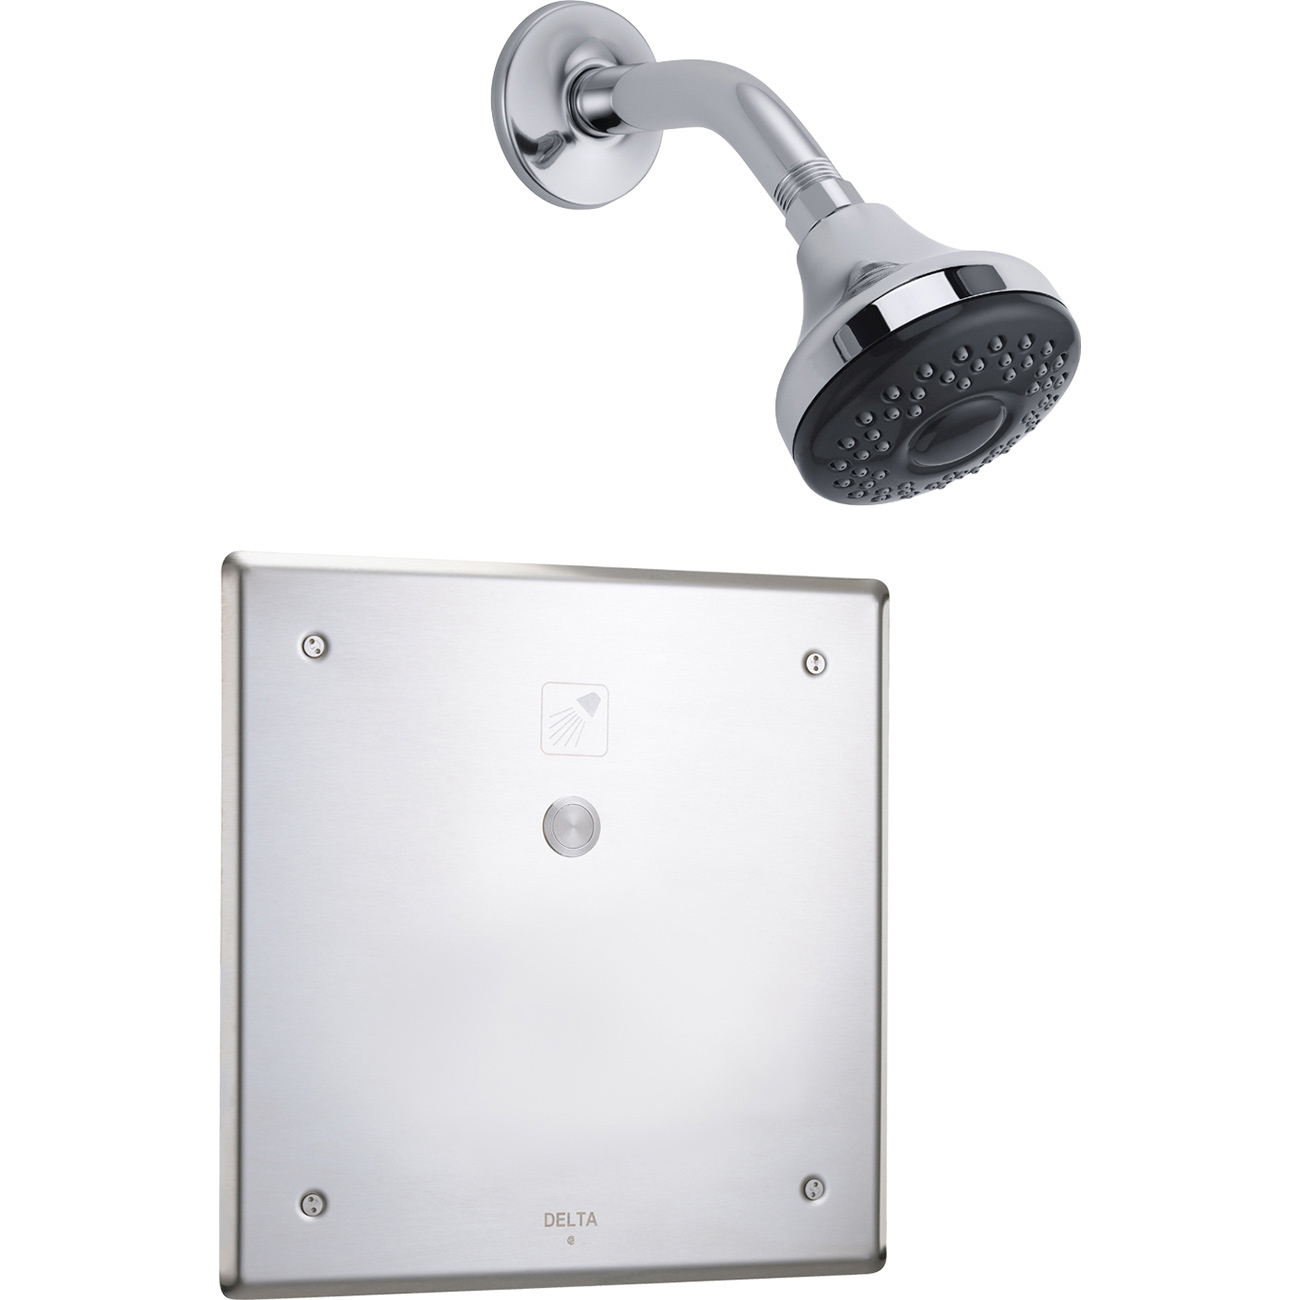 faucet systems ceiling rain shower fixtures chrome showers delta system with